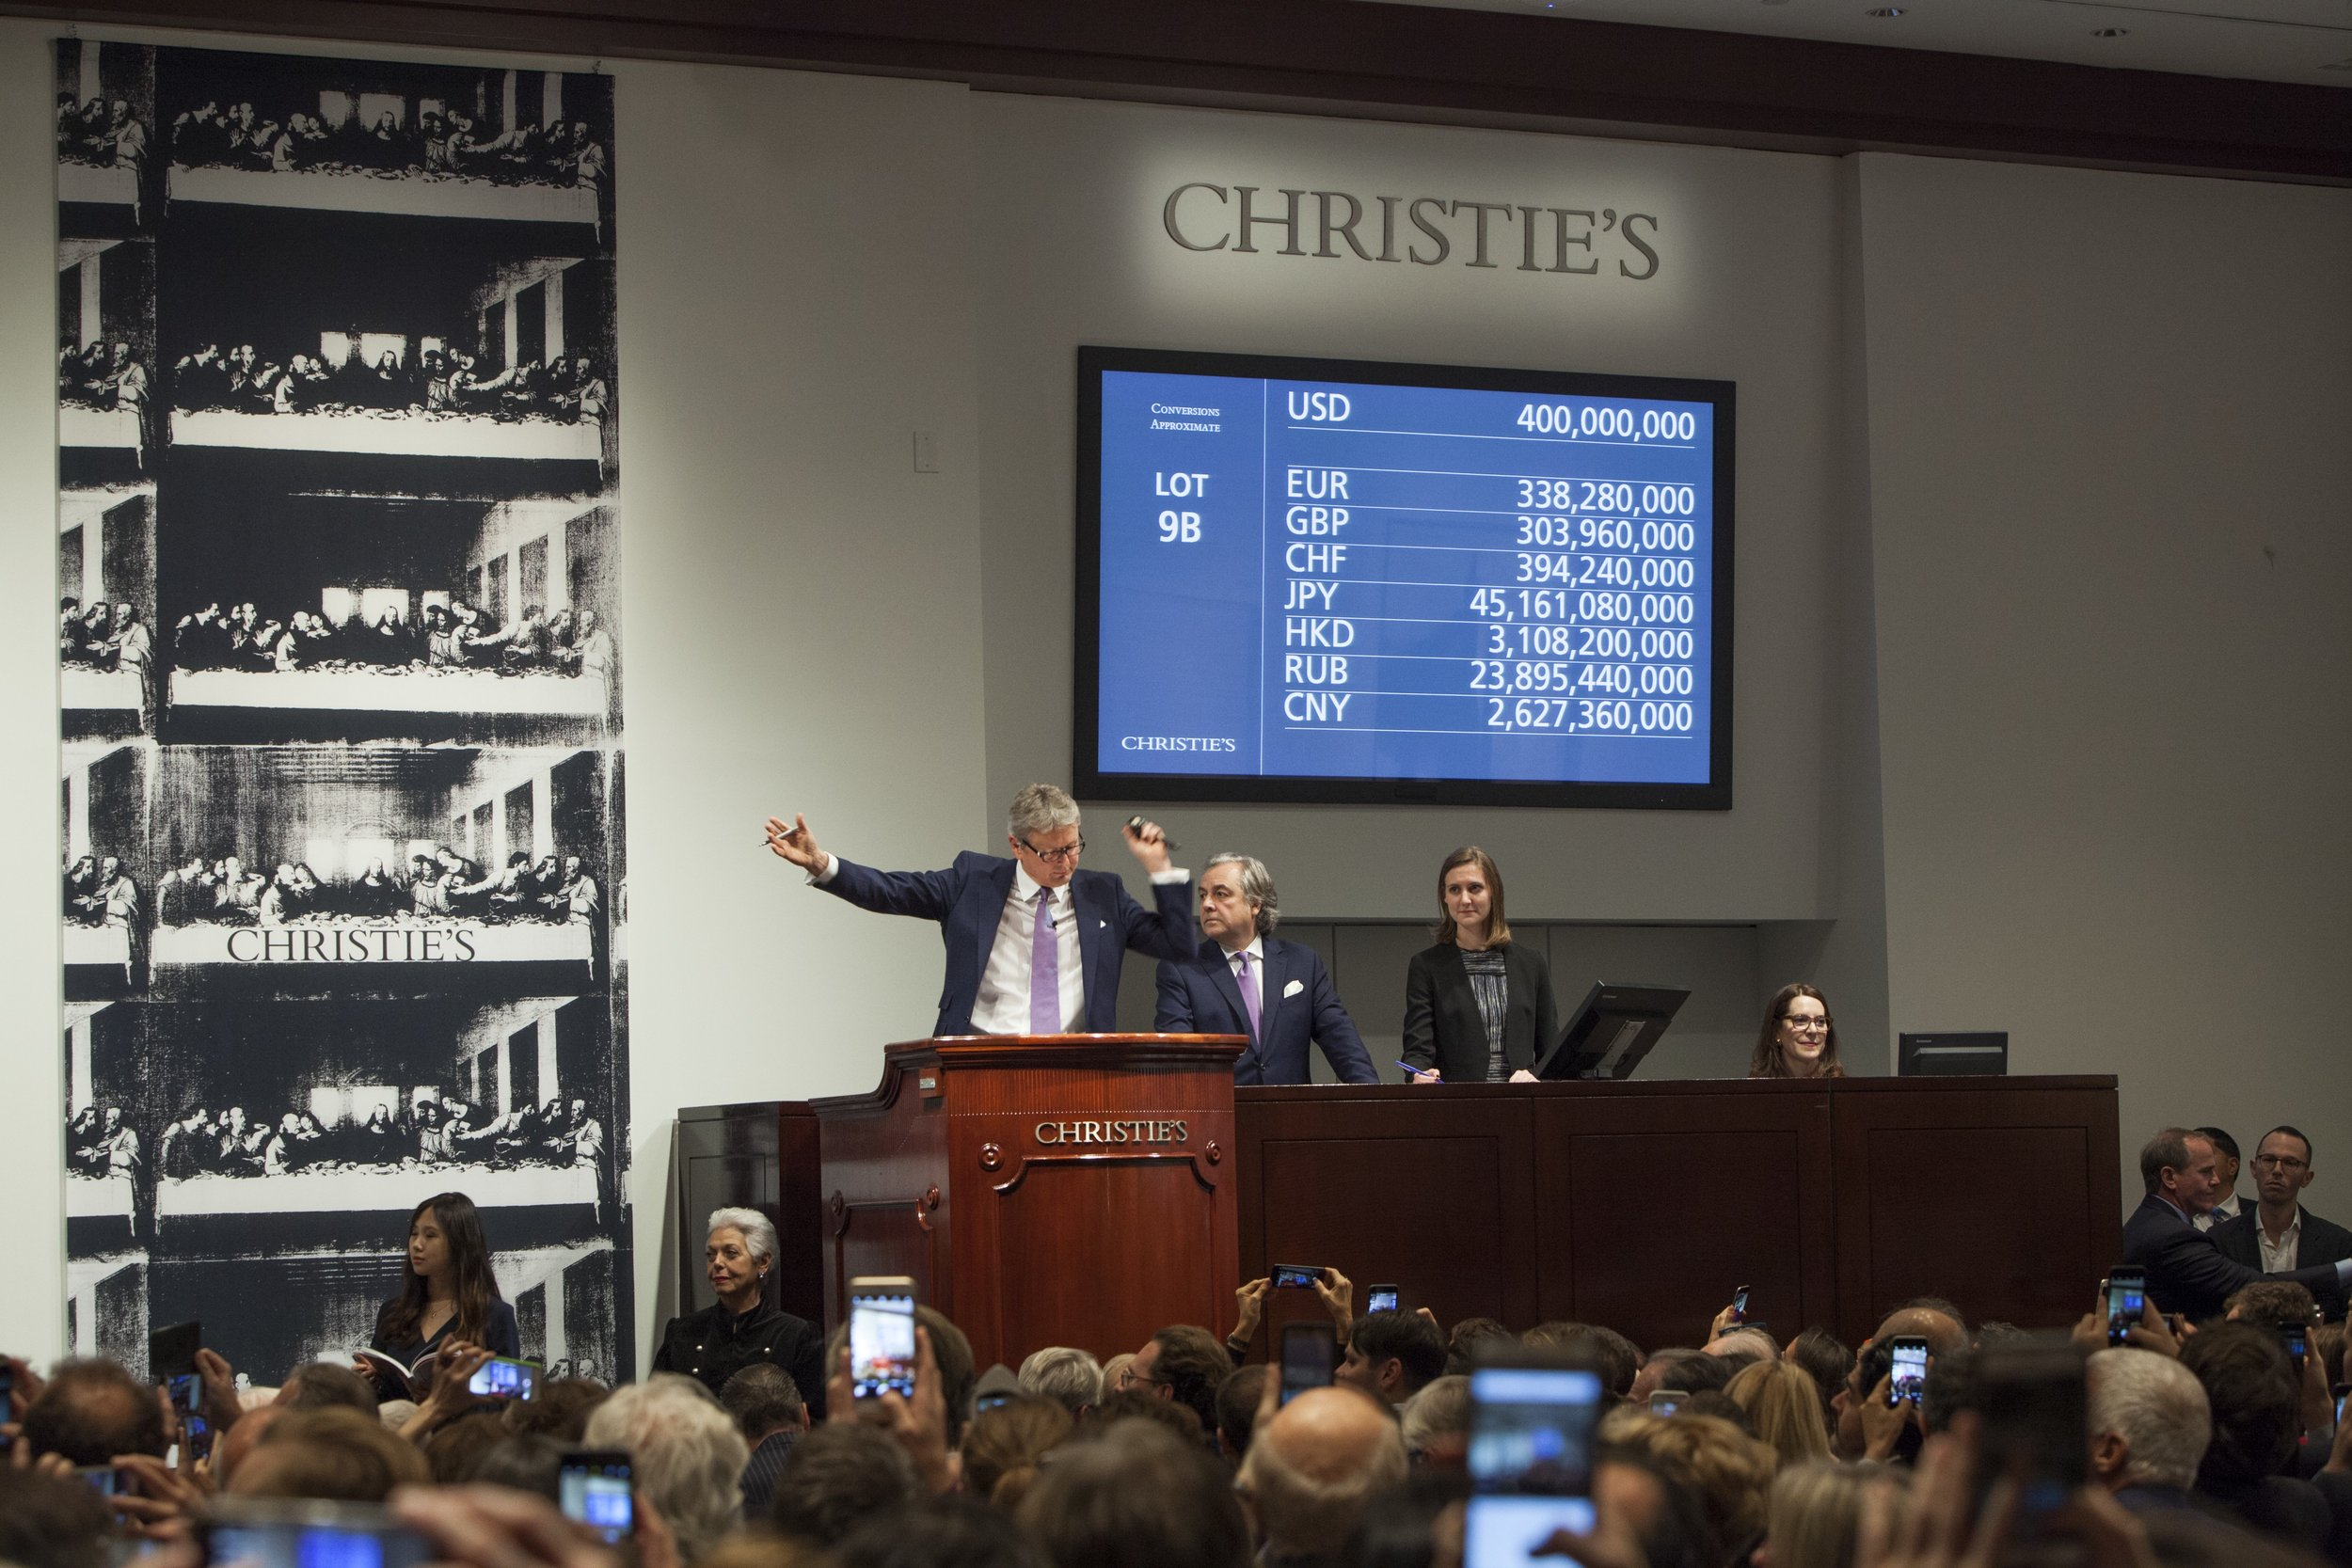 Christie's auction house in New York, photo courtesy of Christie's